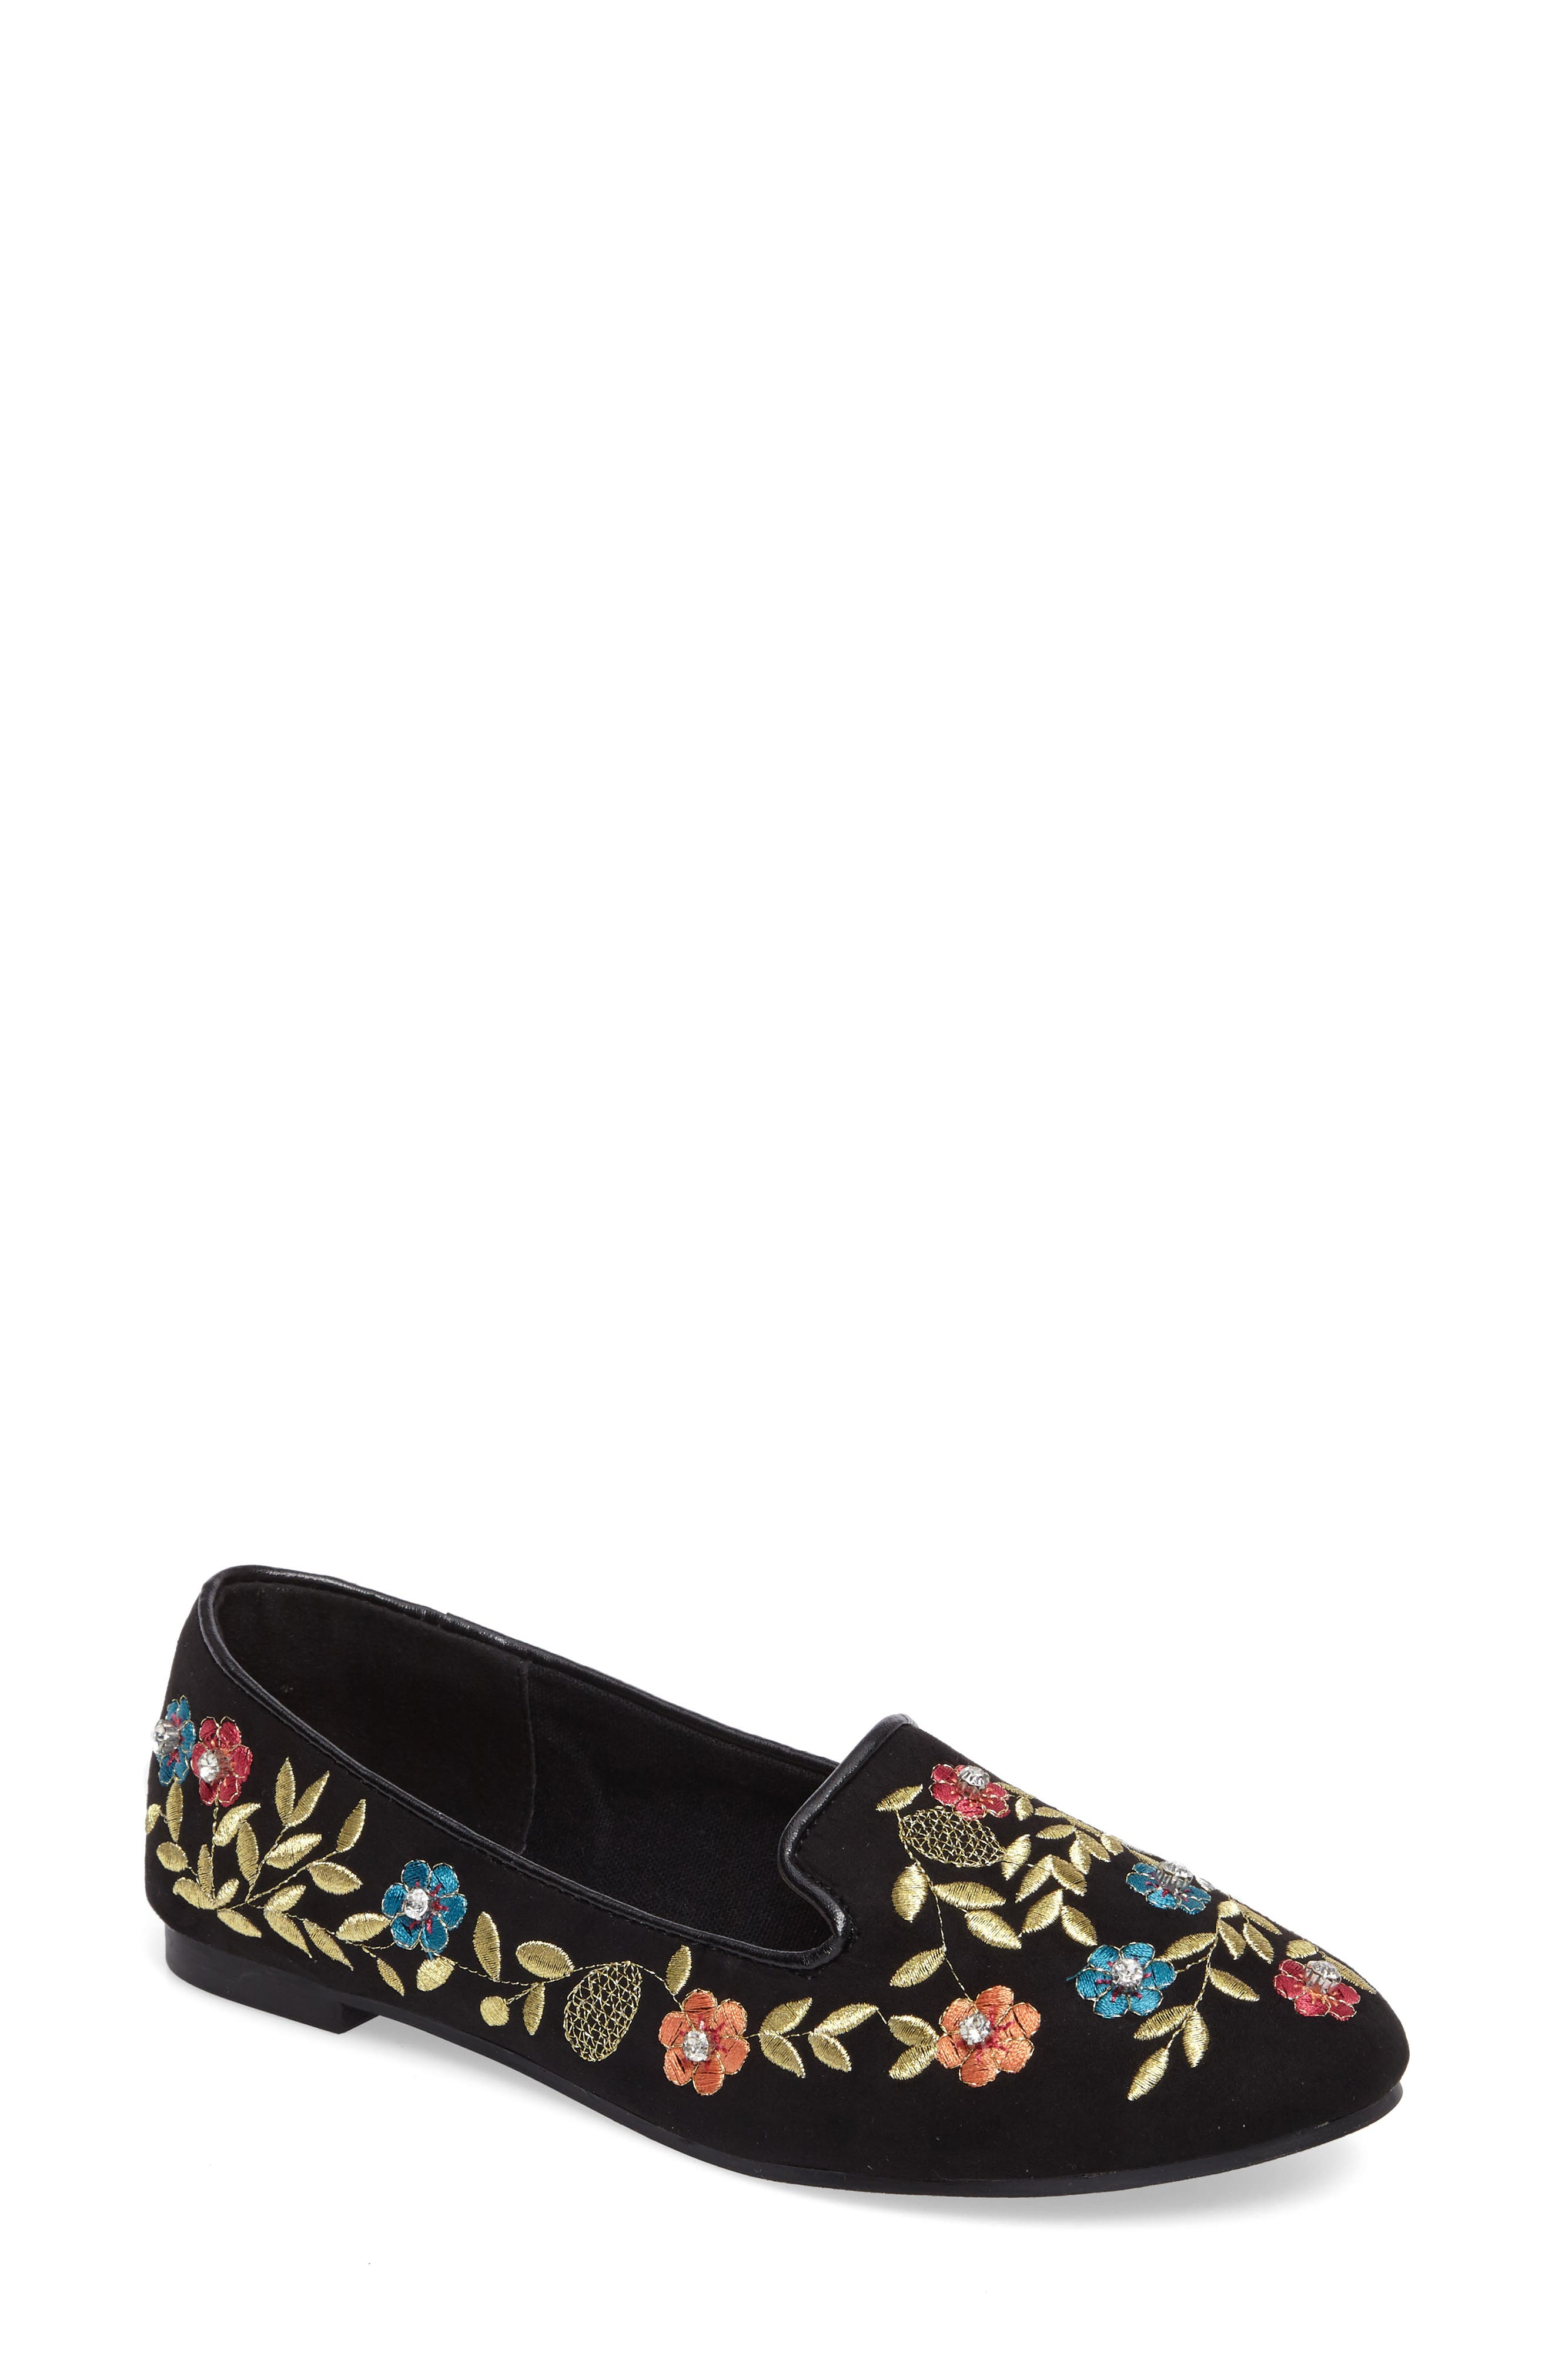 Sweetie Embroidered Loafer,                         Main,                         color, 001